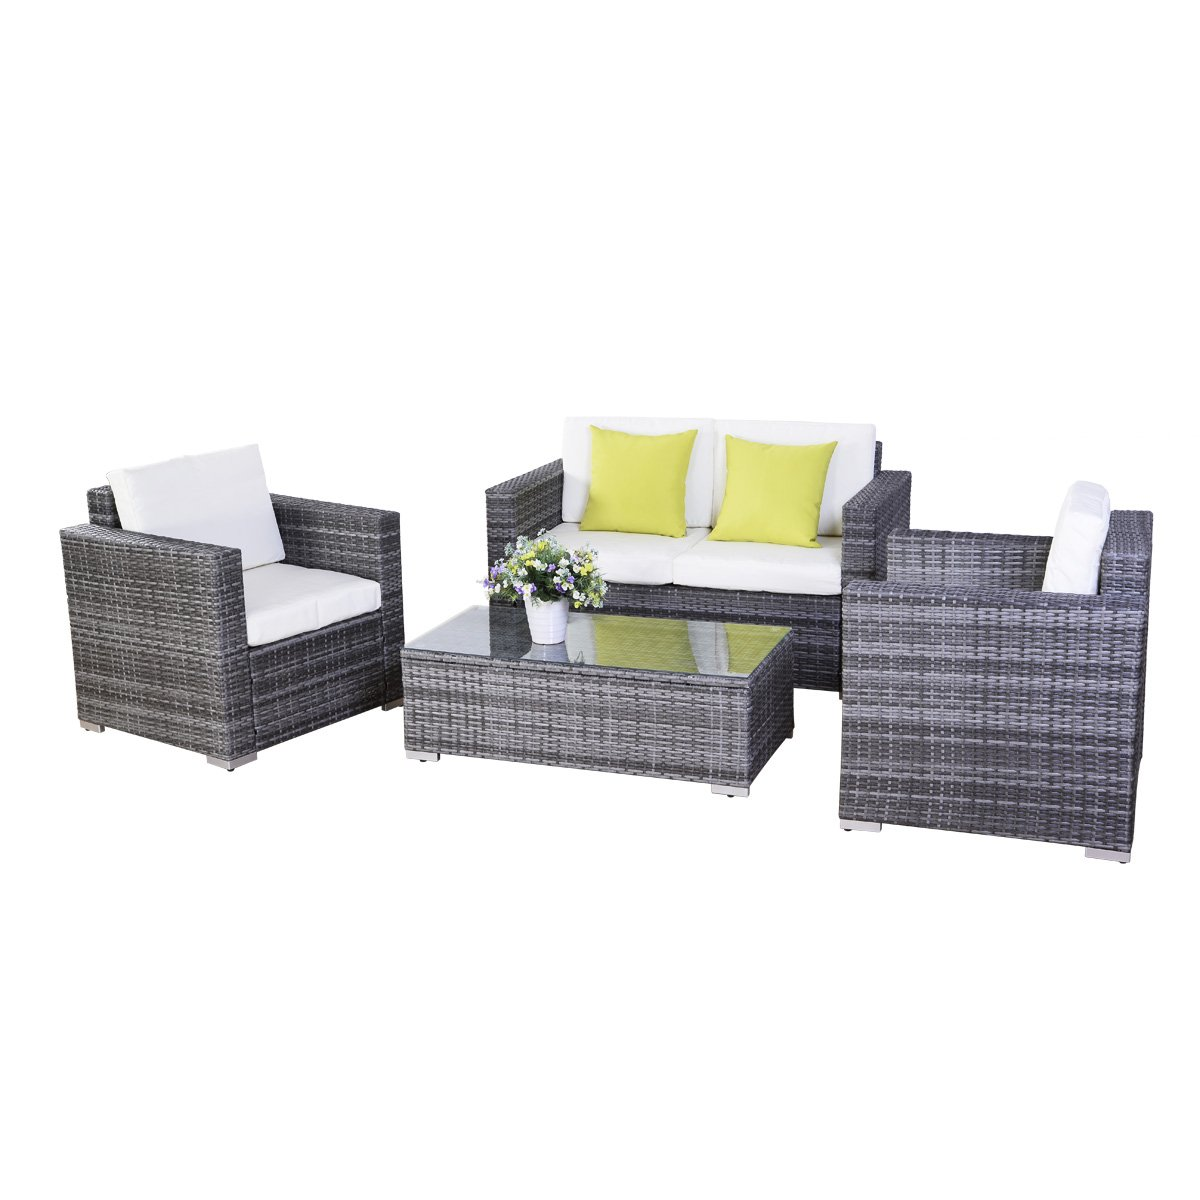 15tlg poly rattan sofa gartenm bel lounge set gruppe sitzgruppen gartengarnitur seseel online. Black Bedroom Furniture Sets. Home Design Ideas